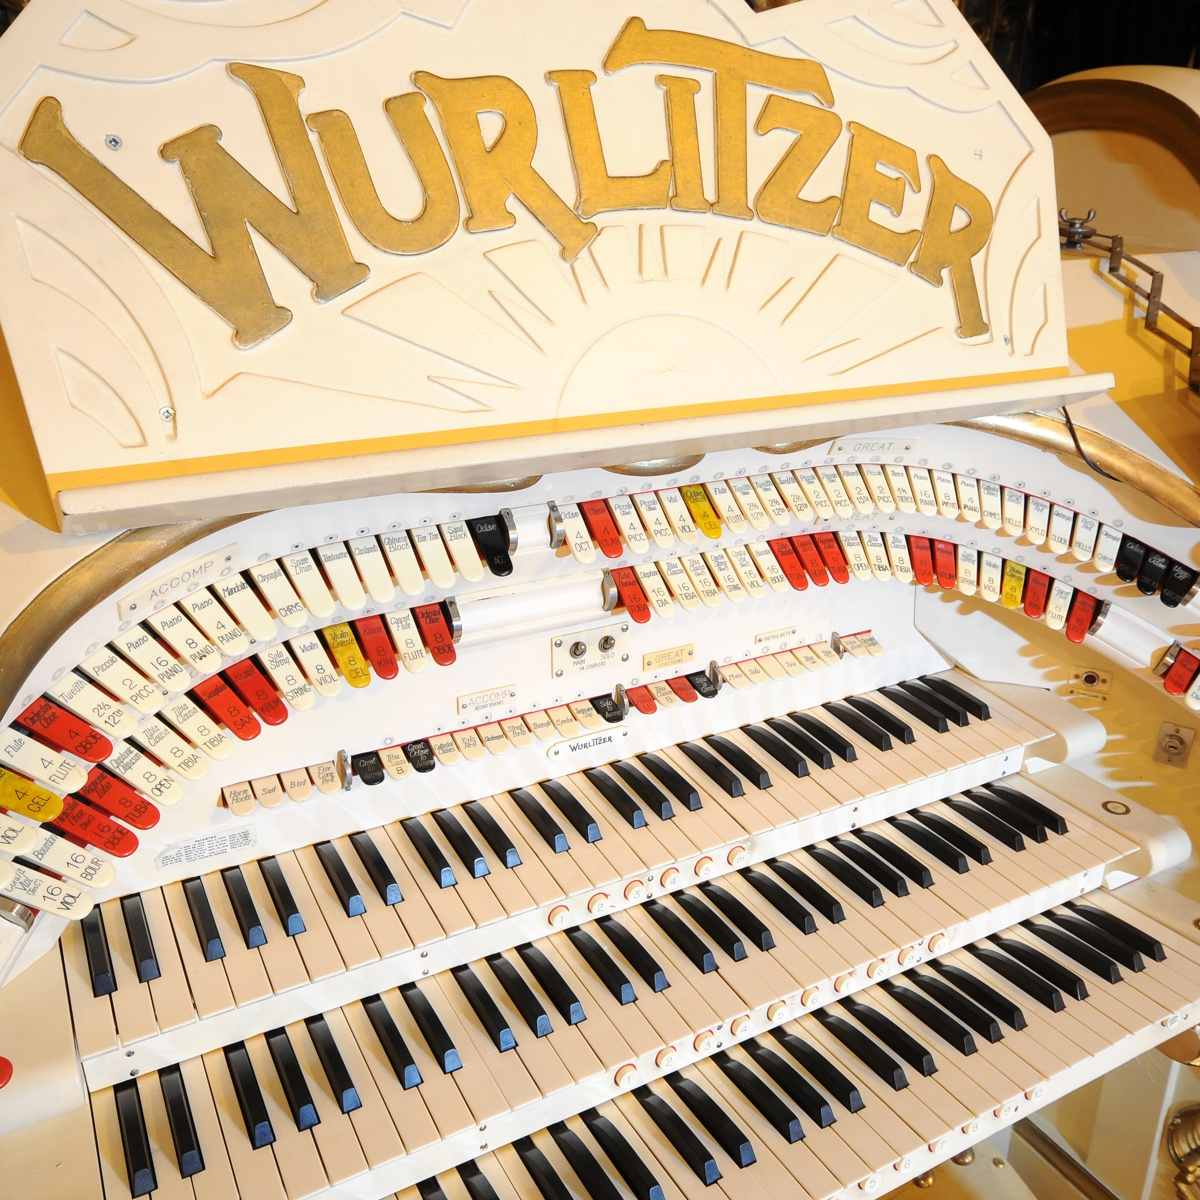 The Blackpool Tower Ballroom Wurlitzer